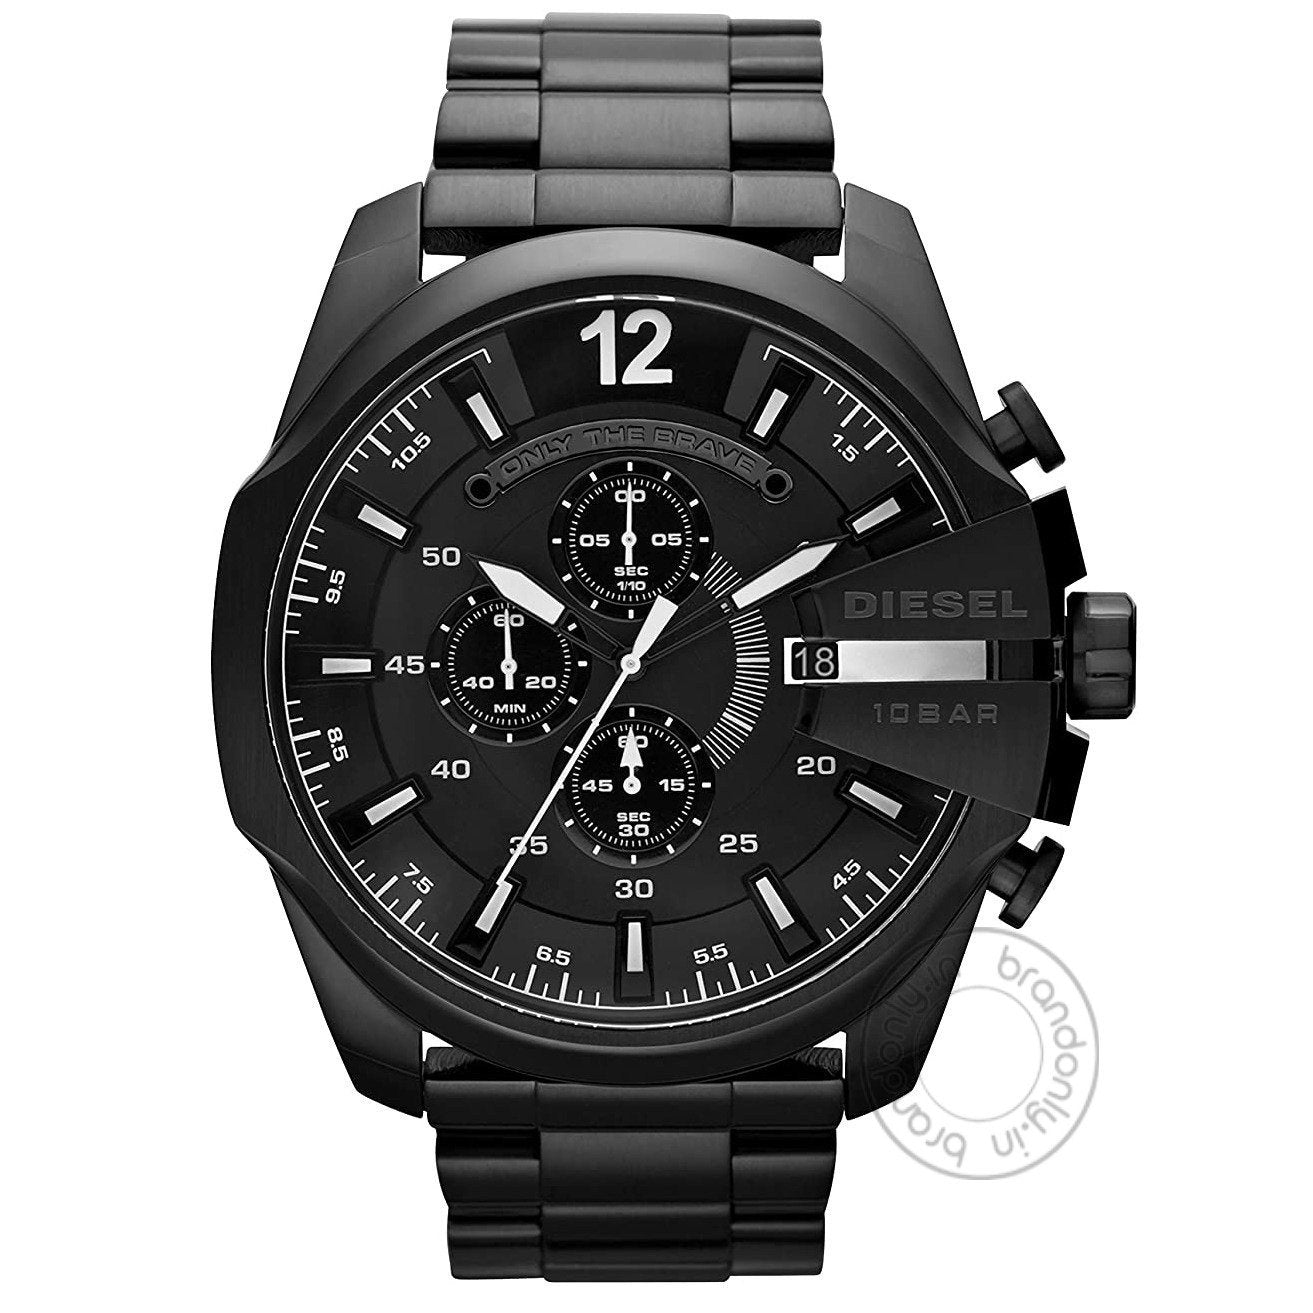 Diesel Mega Chief Chronograph Black Dial Men's Watch For Man   Dz4283 Gift